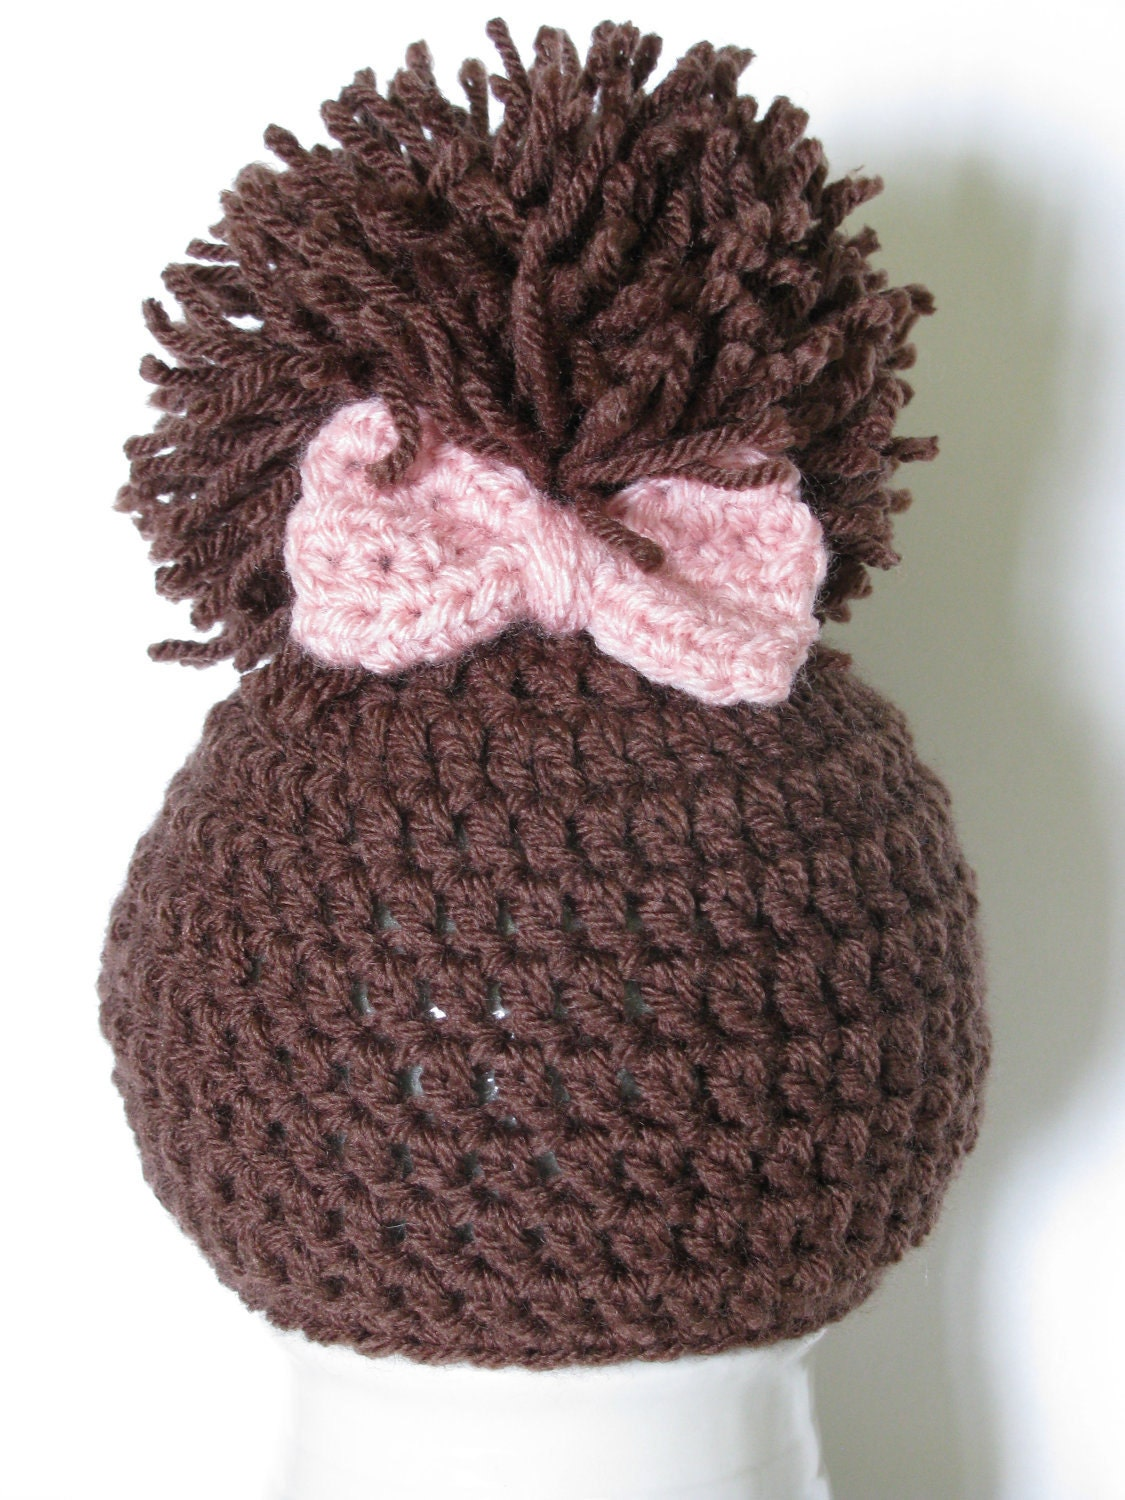 Crochet Baby Hat Pattern With Pom Pom : Crochet Newborn Baby Girl Pom Pom Hat Crochet by AllHookdUp